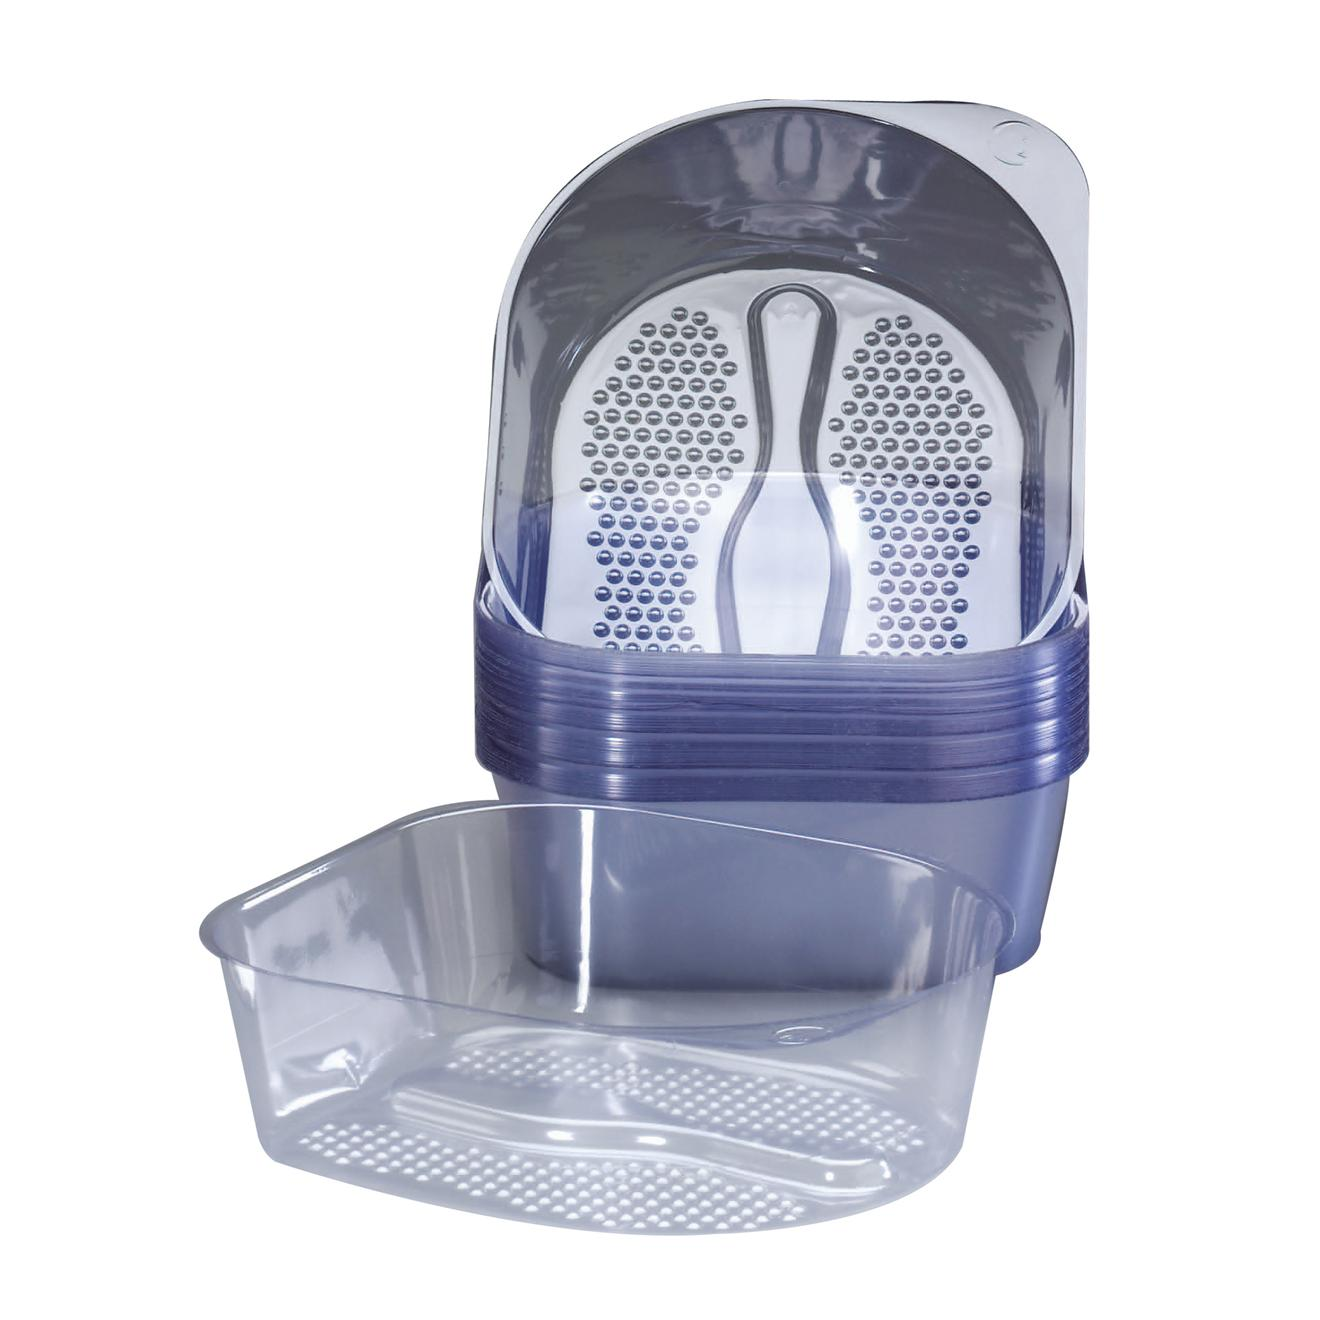 pedicure chair disposable liners swivel millberget review continuum foot spa 300 ct ebay